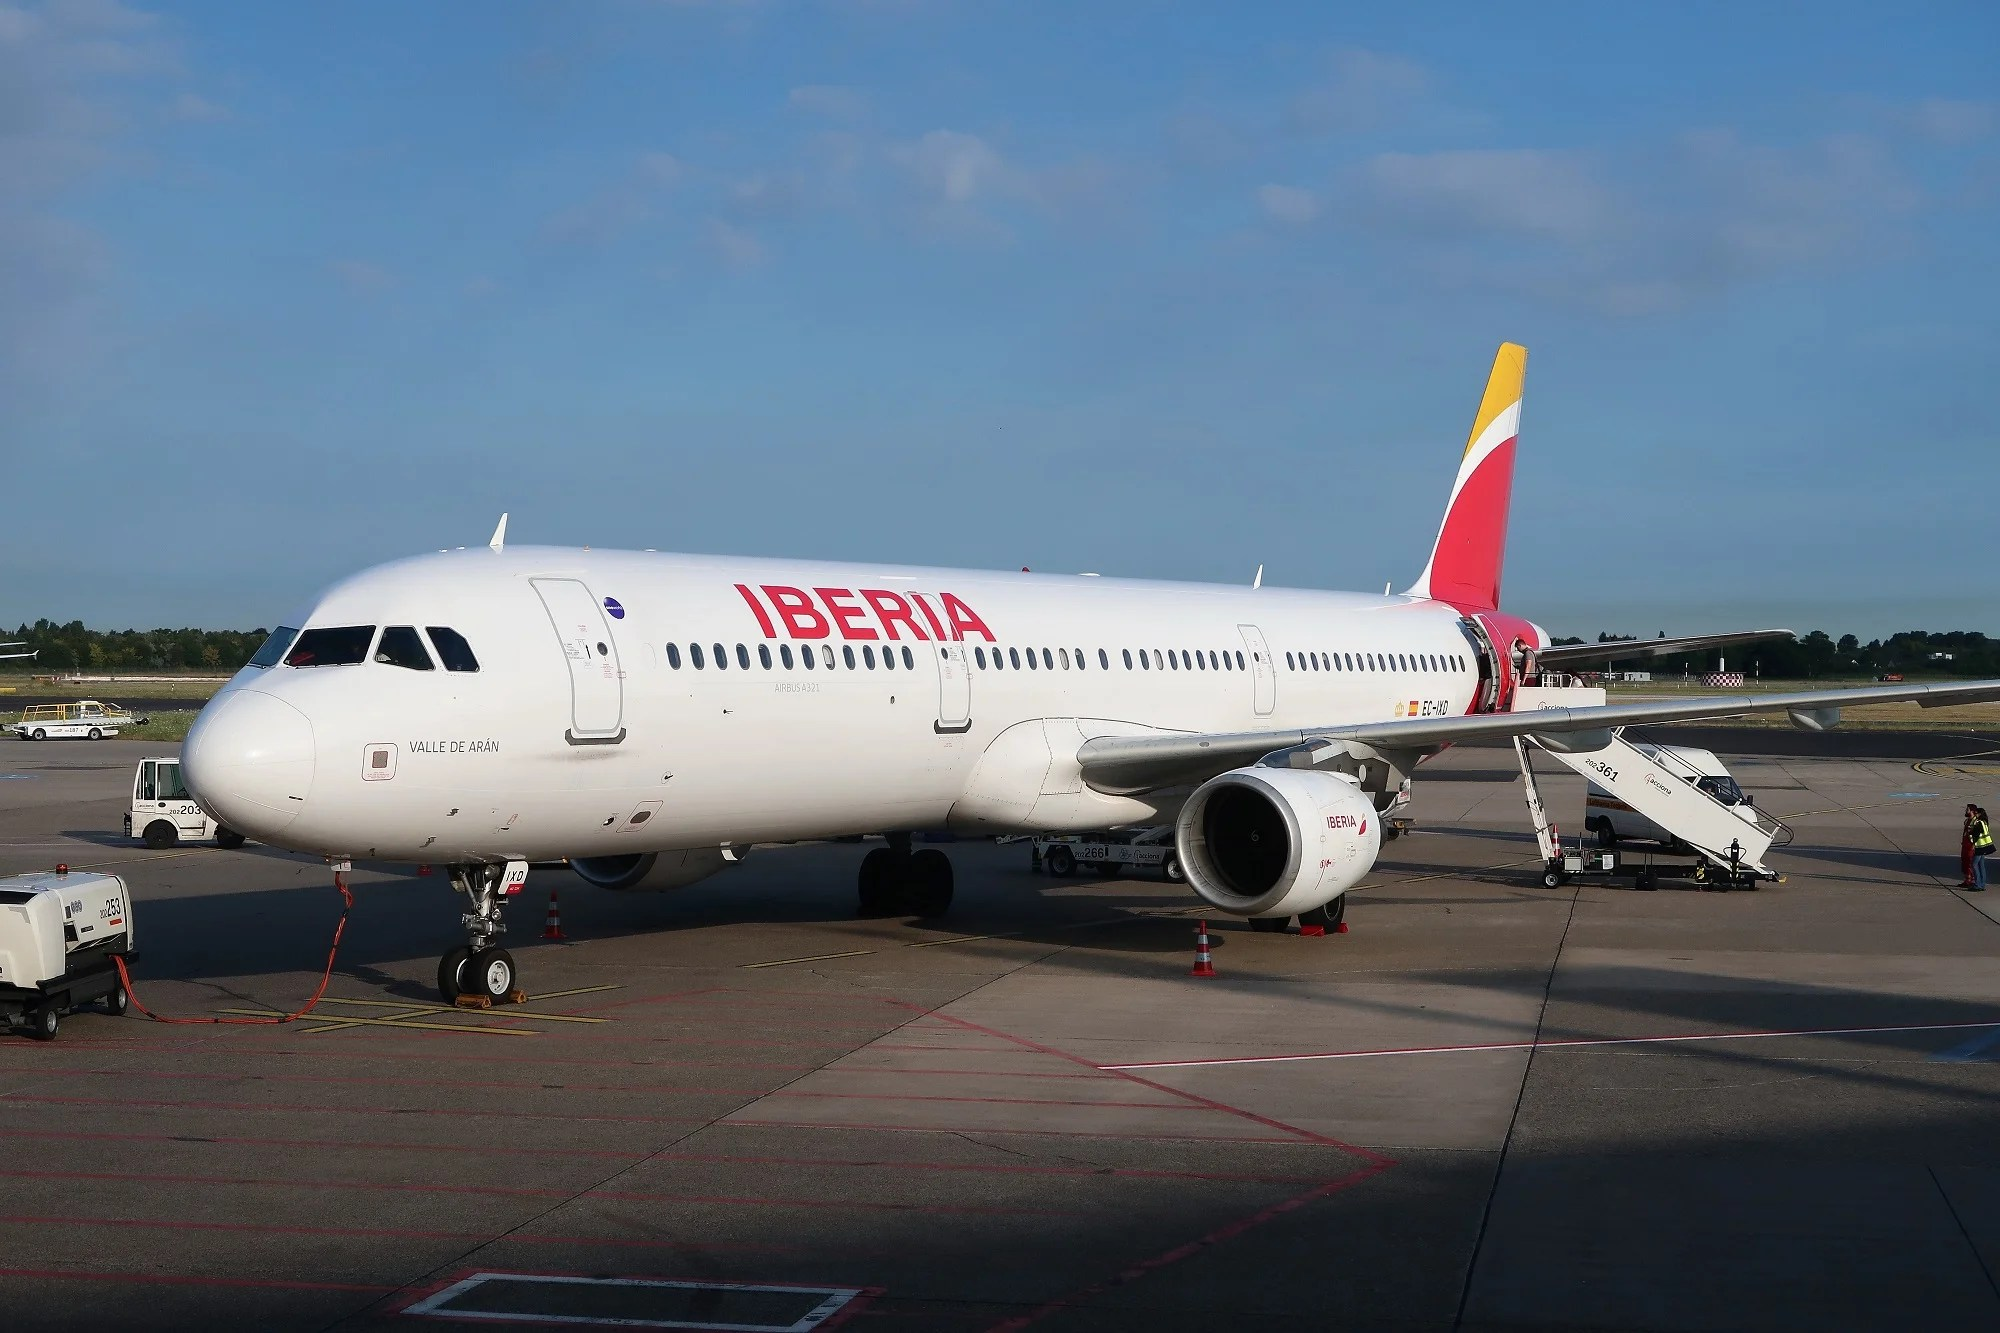 Miles And More Iberia Just A Few More Days To Redeem Your Promotional Iberia Avios